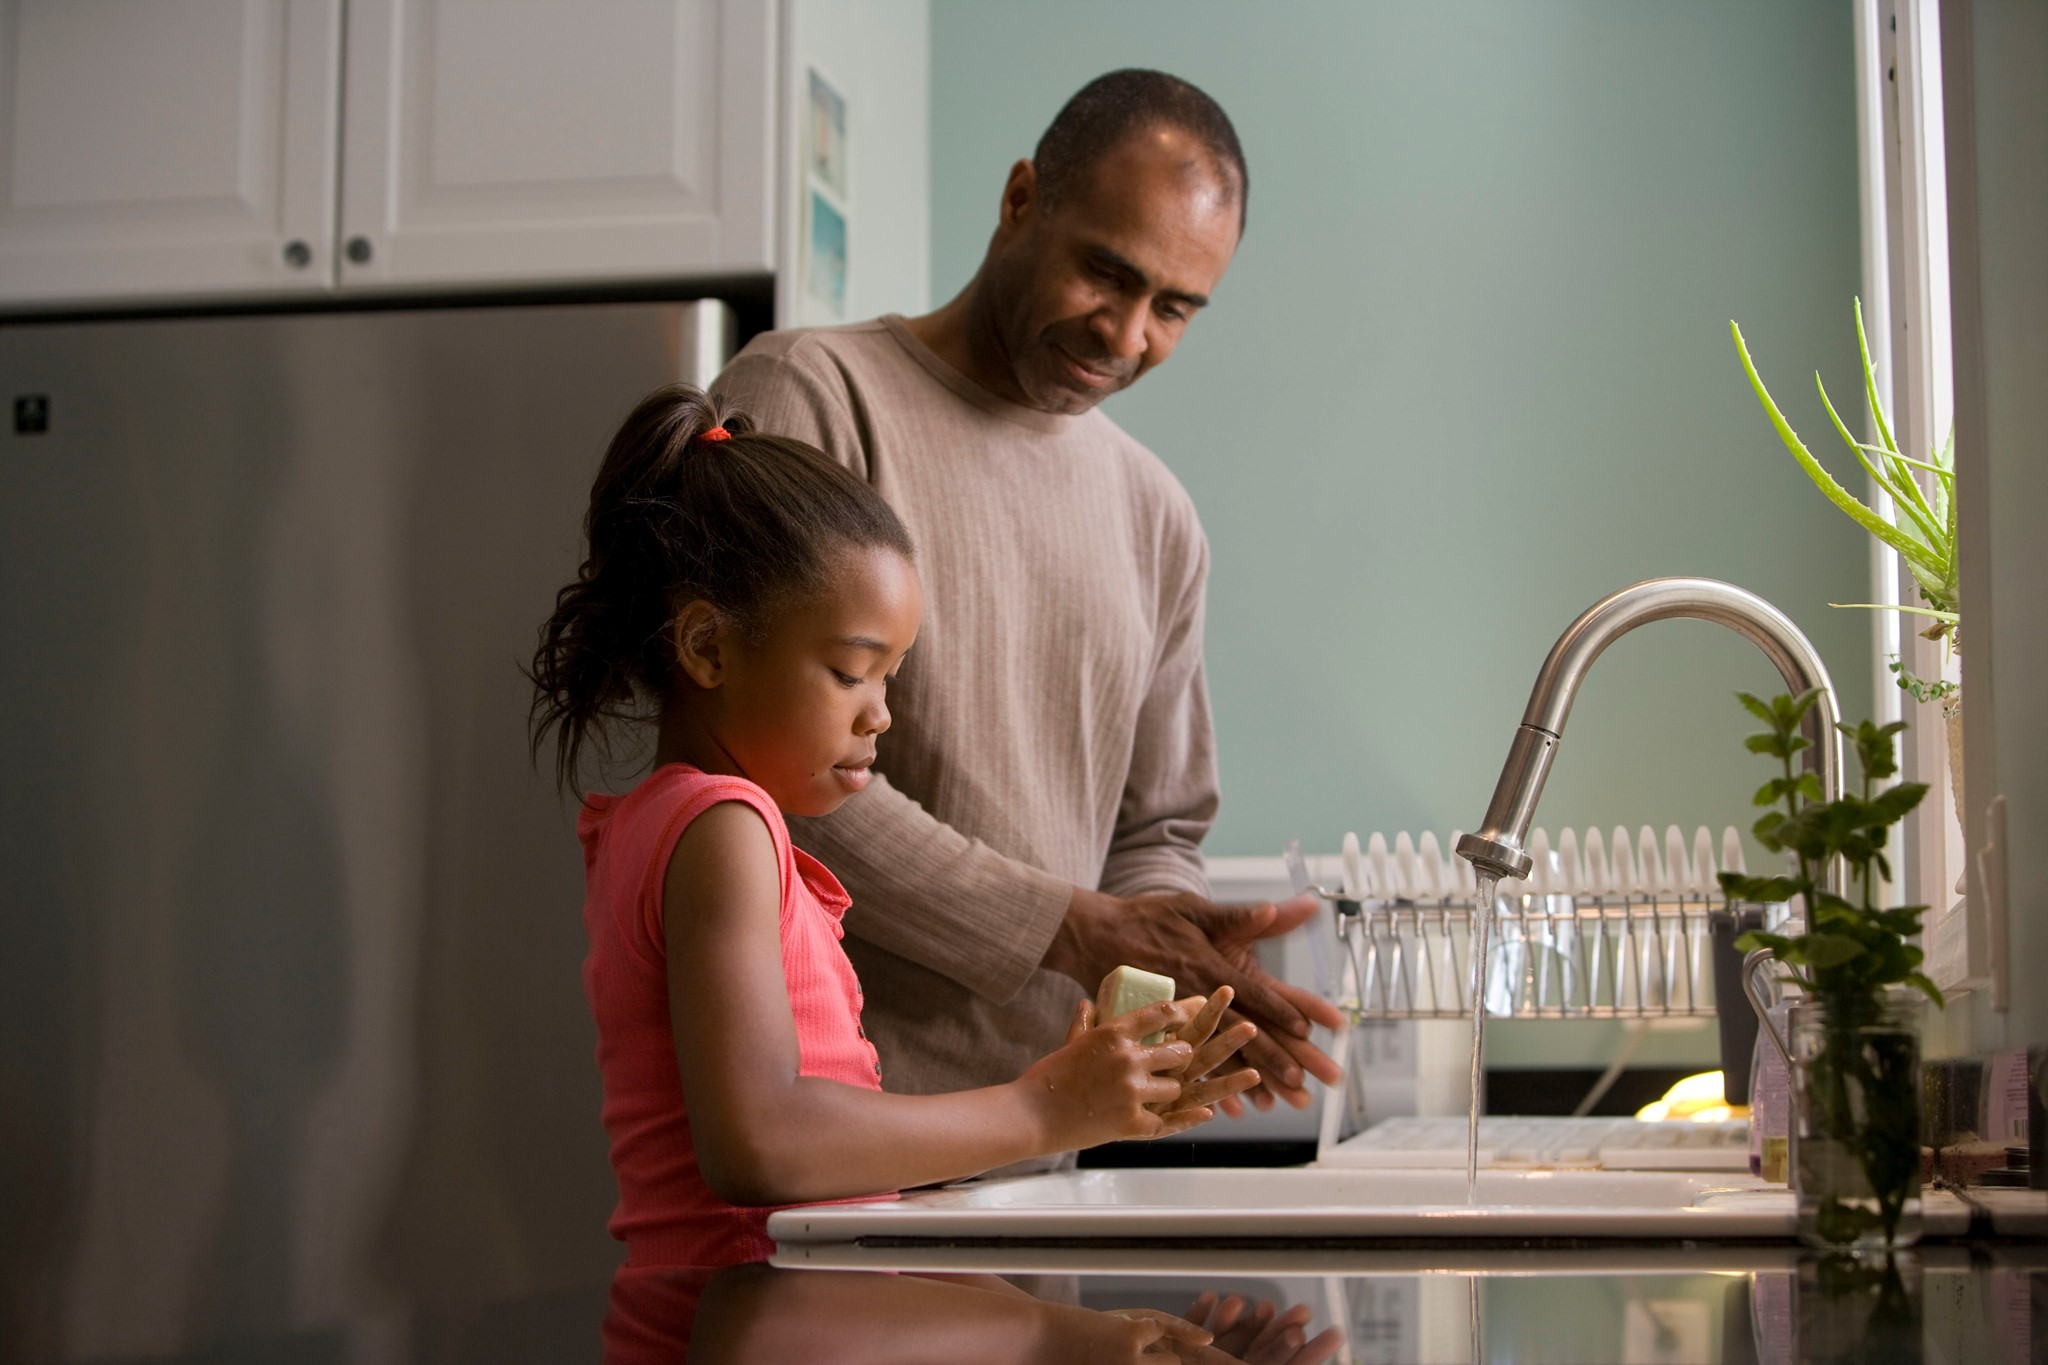 A father and daughter wash their hands in a kitchen sink.